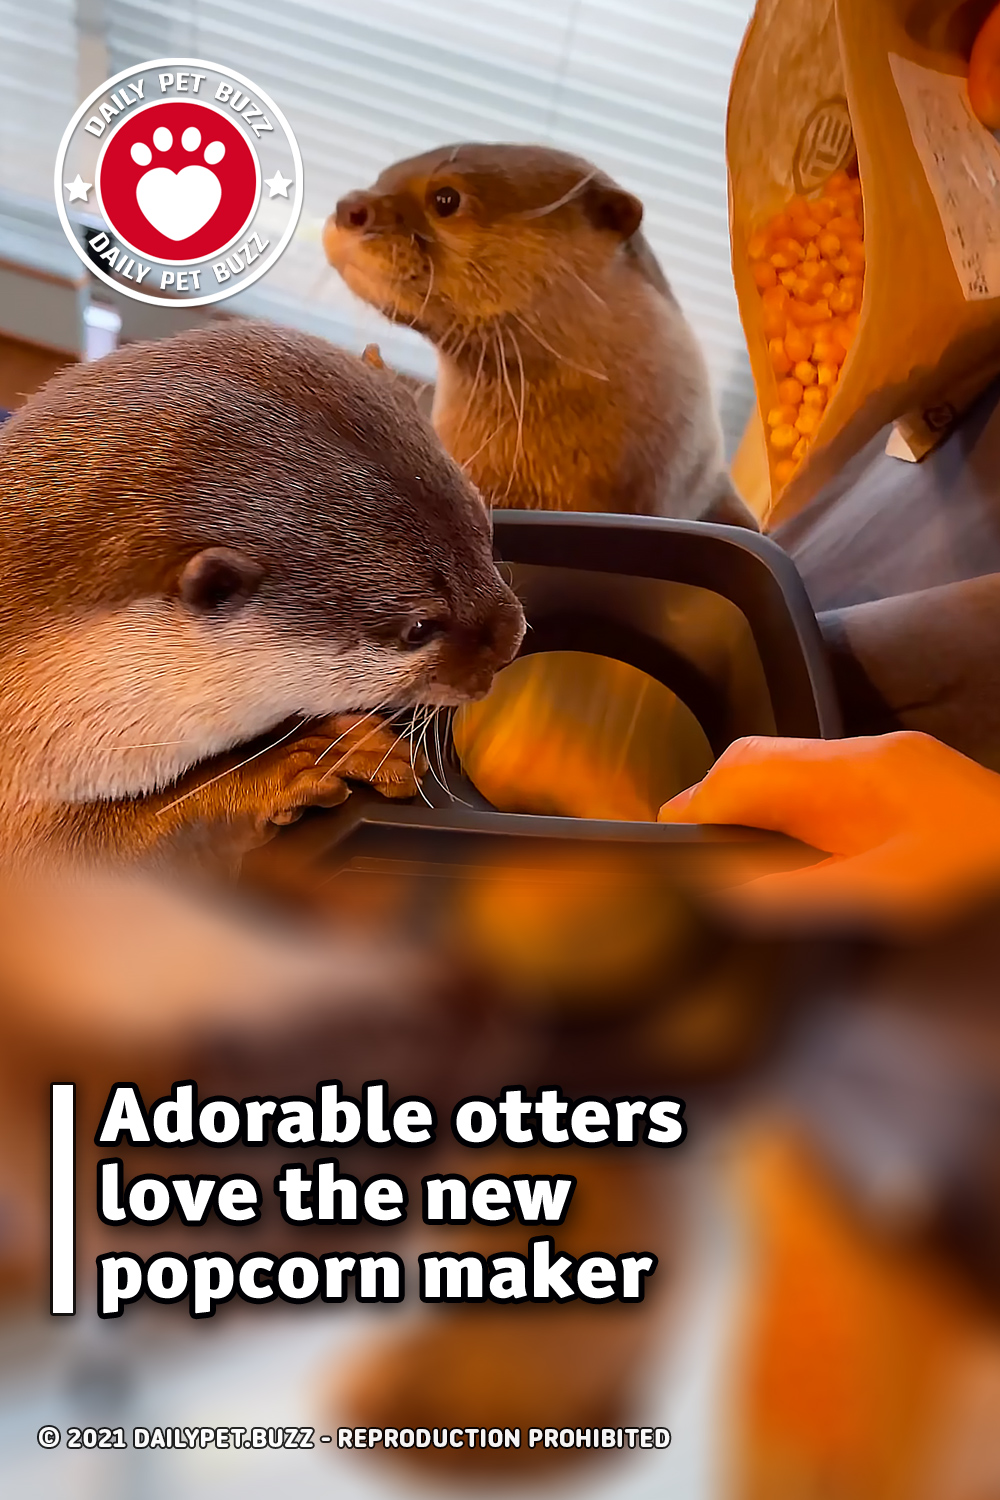 Adorable otters love the new popcorn maker